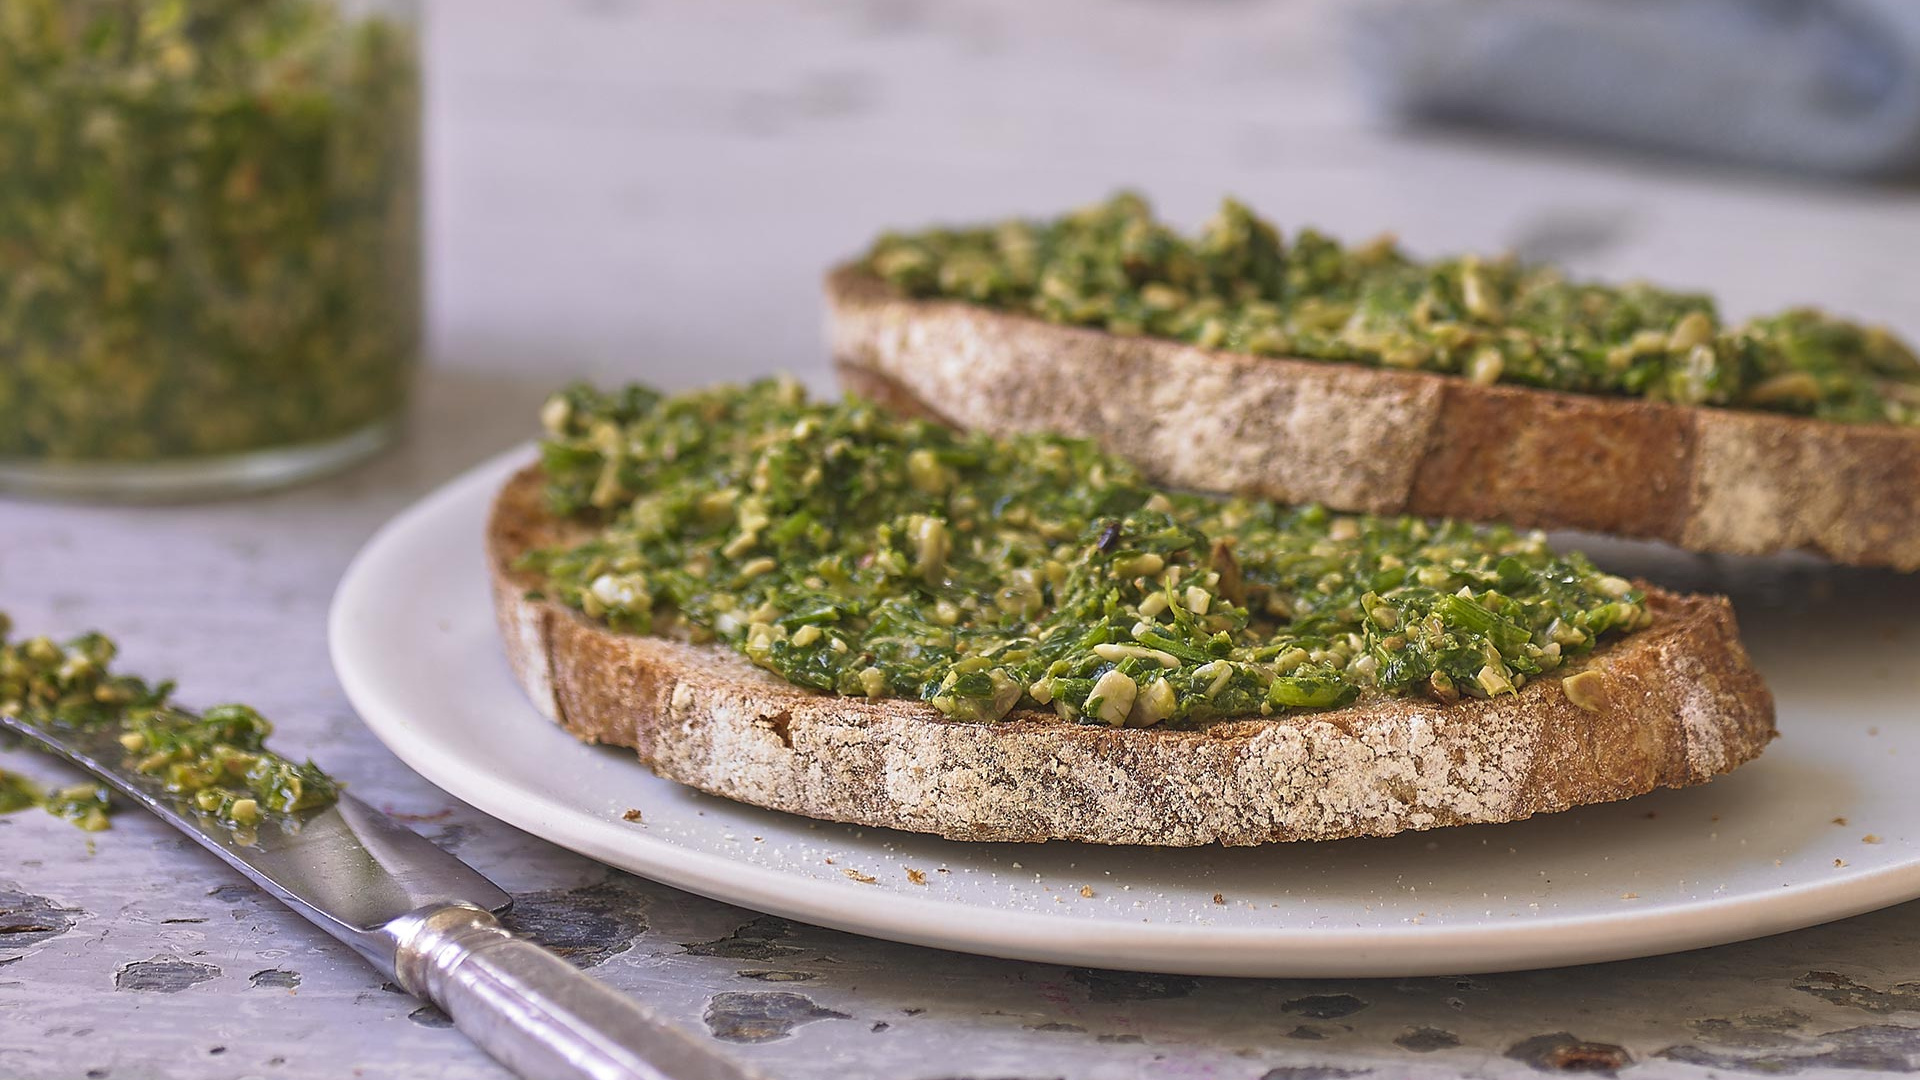 Alexandra Dudley's poorman's sunflower seed pesto; Photograph by Andrew Burton